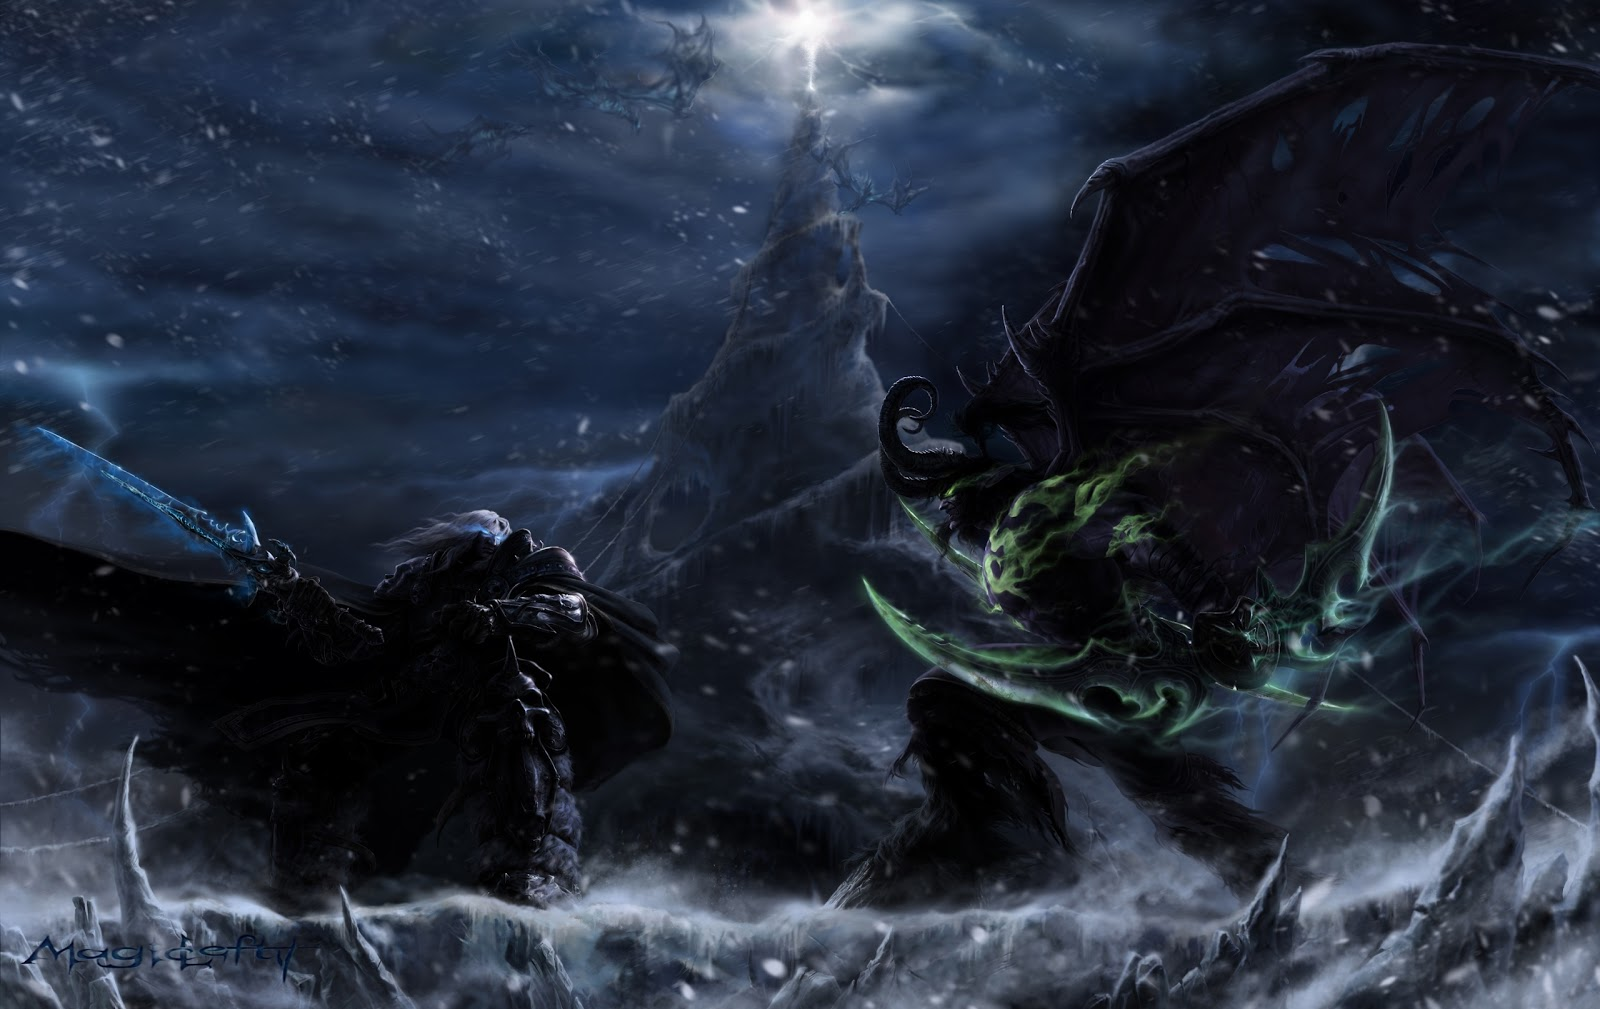 http://3.bp.blogspot.com/-BSDVay41zkE/T3bKuxhUisI/AAAAAAAABP0/K4Rz26yEmt0/s1600/Arthas-Menethil-the-DeathKnight-vs-Illidan-Stormrage-the-Betrayer.jpg